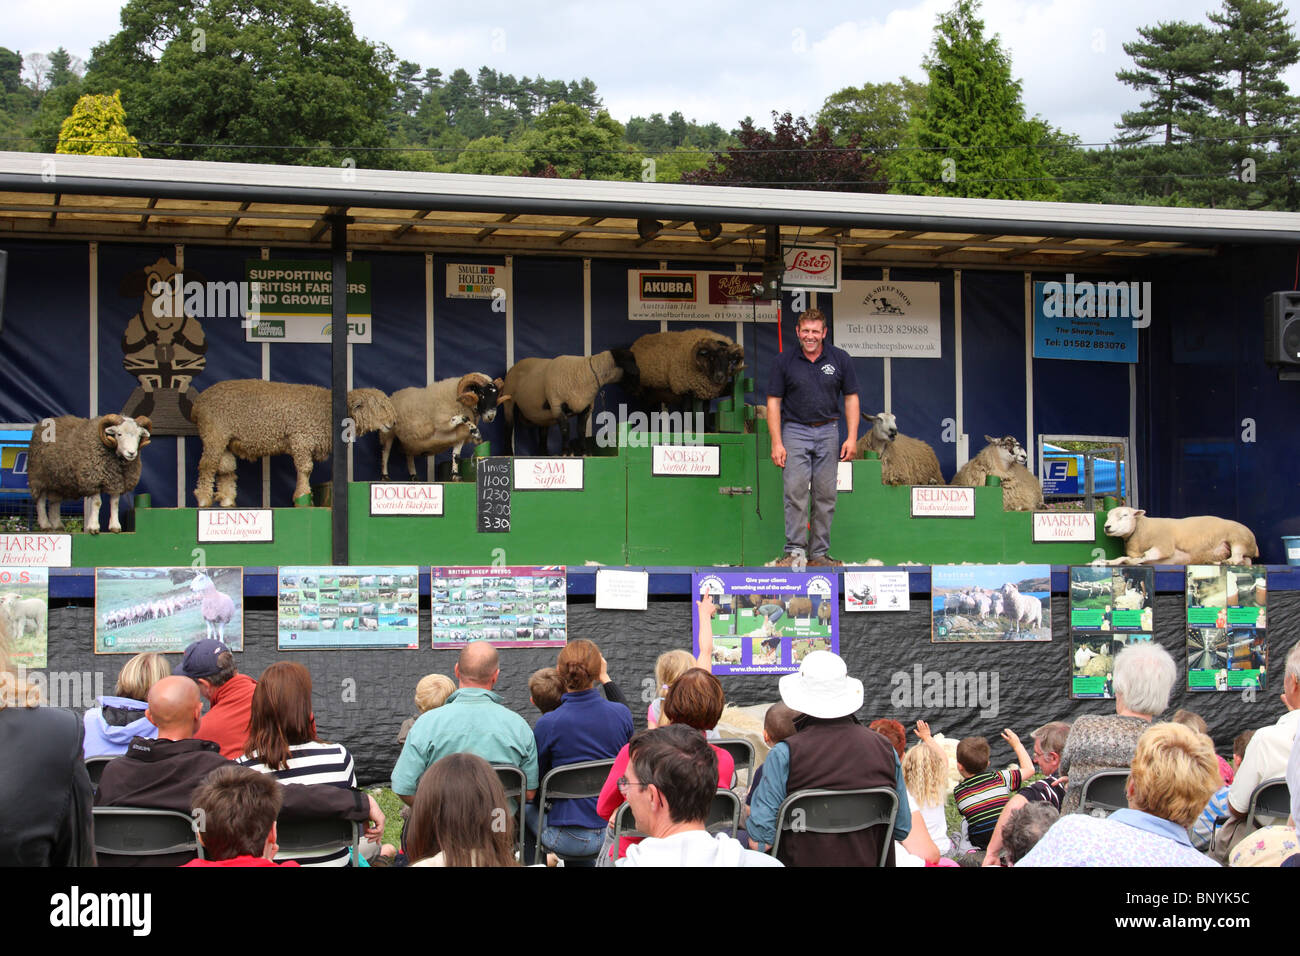 Various breeds of sheep at a farming awareness demonstration at the Bakewell Show, Bakewell, Derbyshire, England, - Stock Image